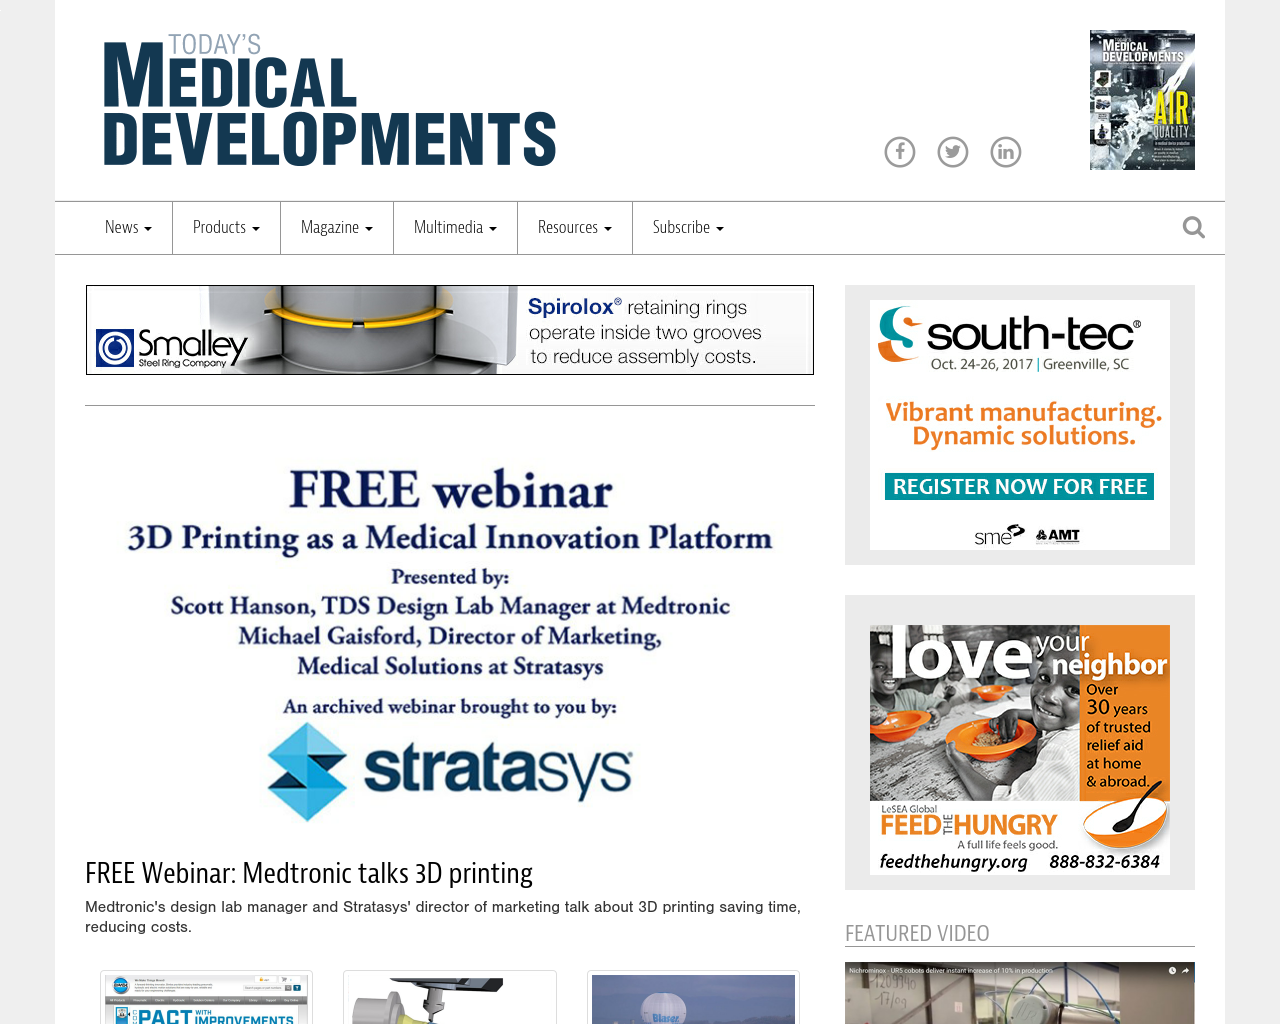 Today's-Medical-Development-Advertising-Reviews-Pricing